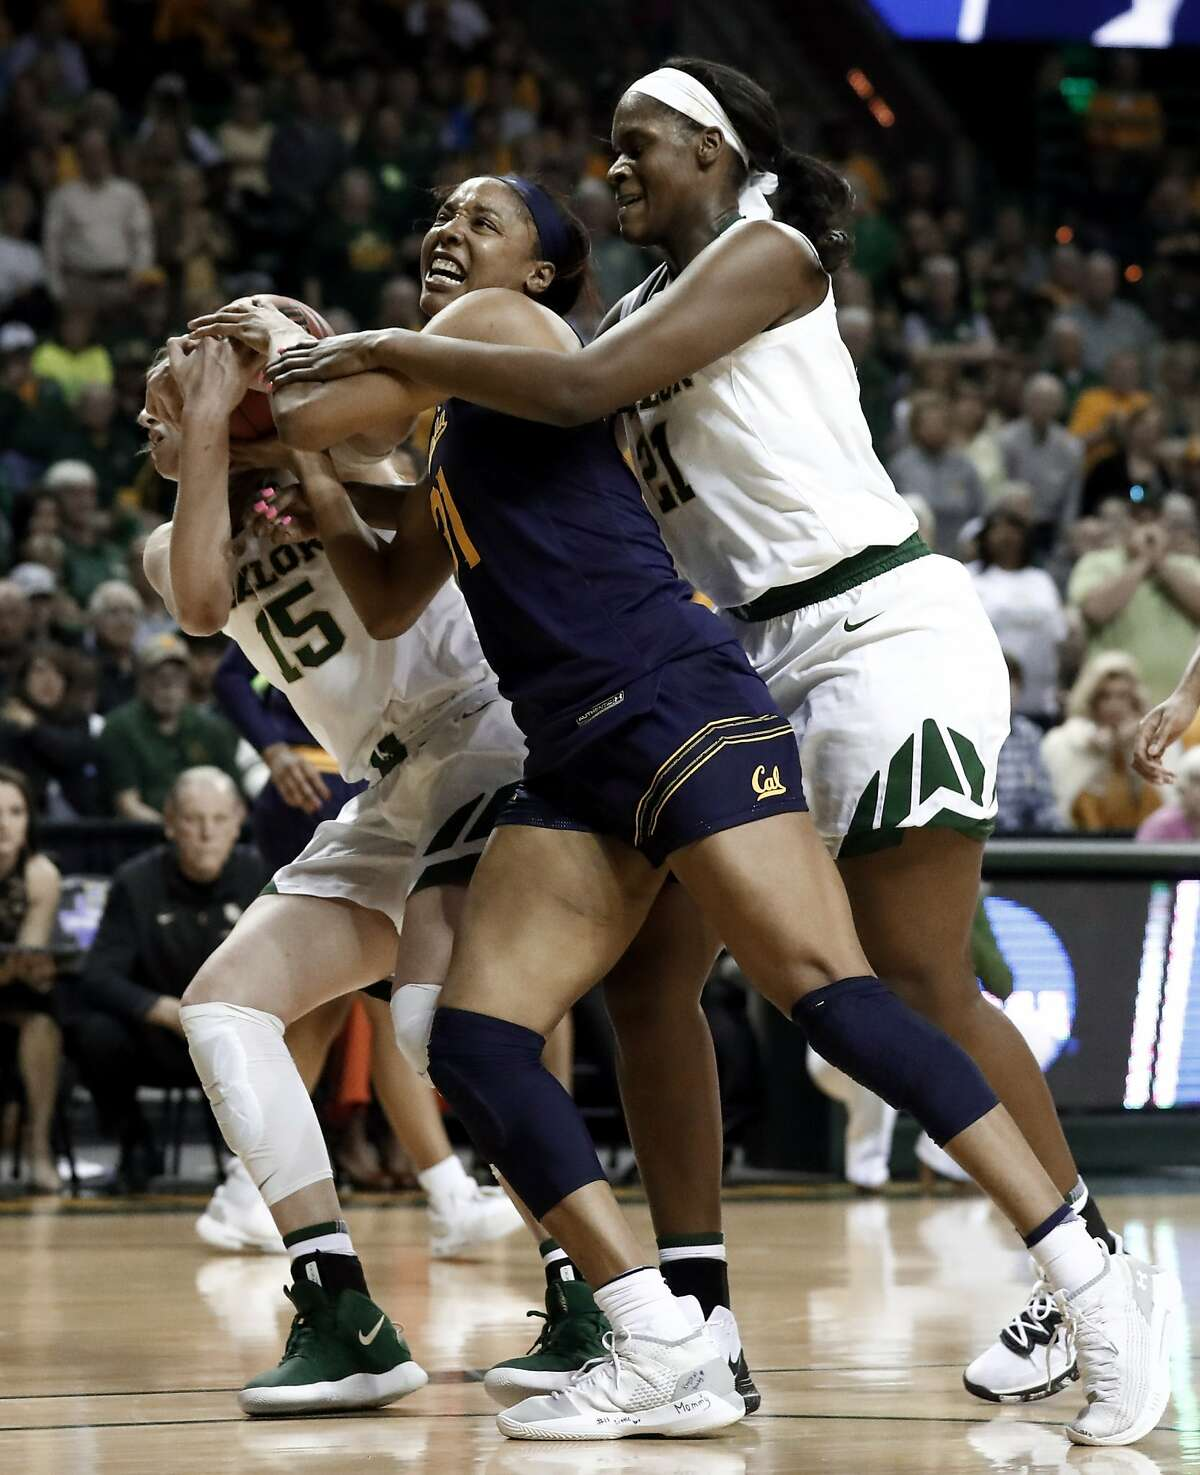 Baylor's Lauren Cox (15) and Kalani Brown, right, combine to strip the ball away from California center Kristine Anigwe (31) in the first half of a second-round game in the NCAA women's college basketball tournament in Waco, Texas, Monday, March 25, 2019. (AP Photo/Tony Gutierrez)